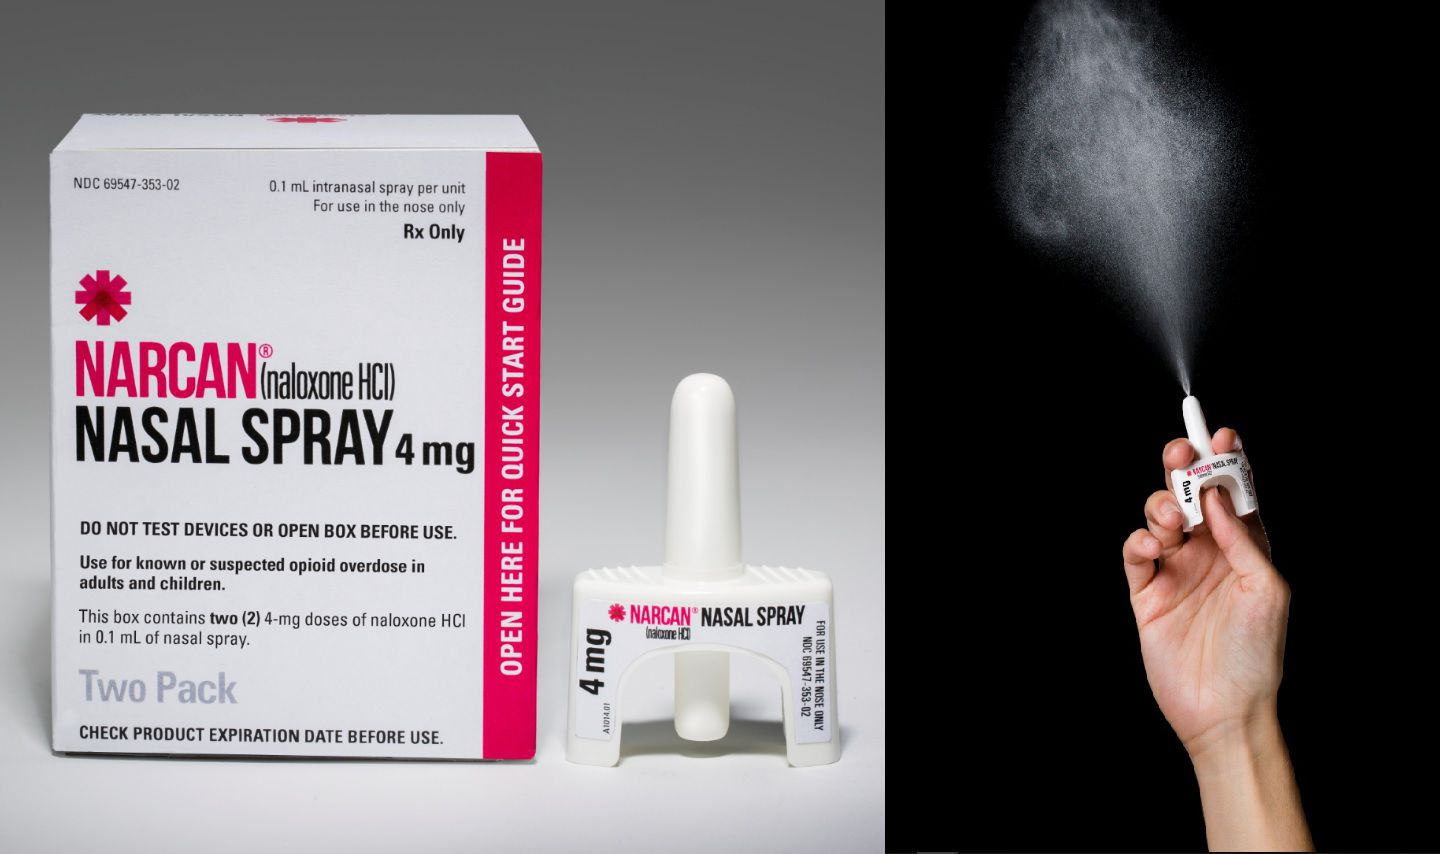 Stock image of FDA-approved Narcan (naloxone) nasal spray, a medication that rapidly reverses the effects of an opioid overdose.